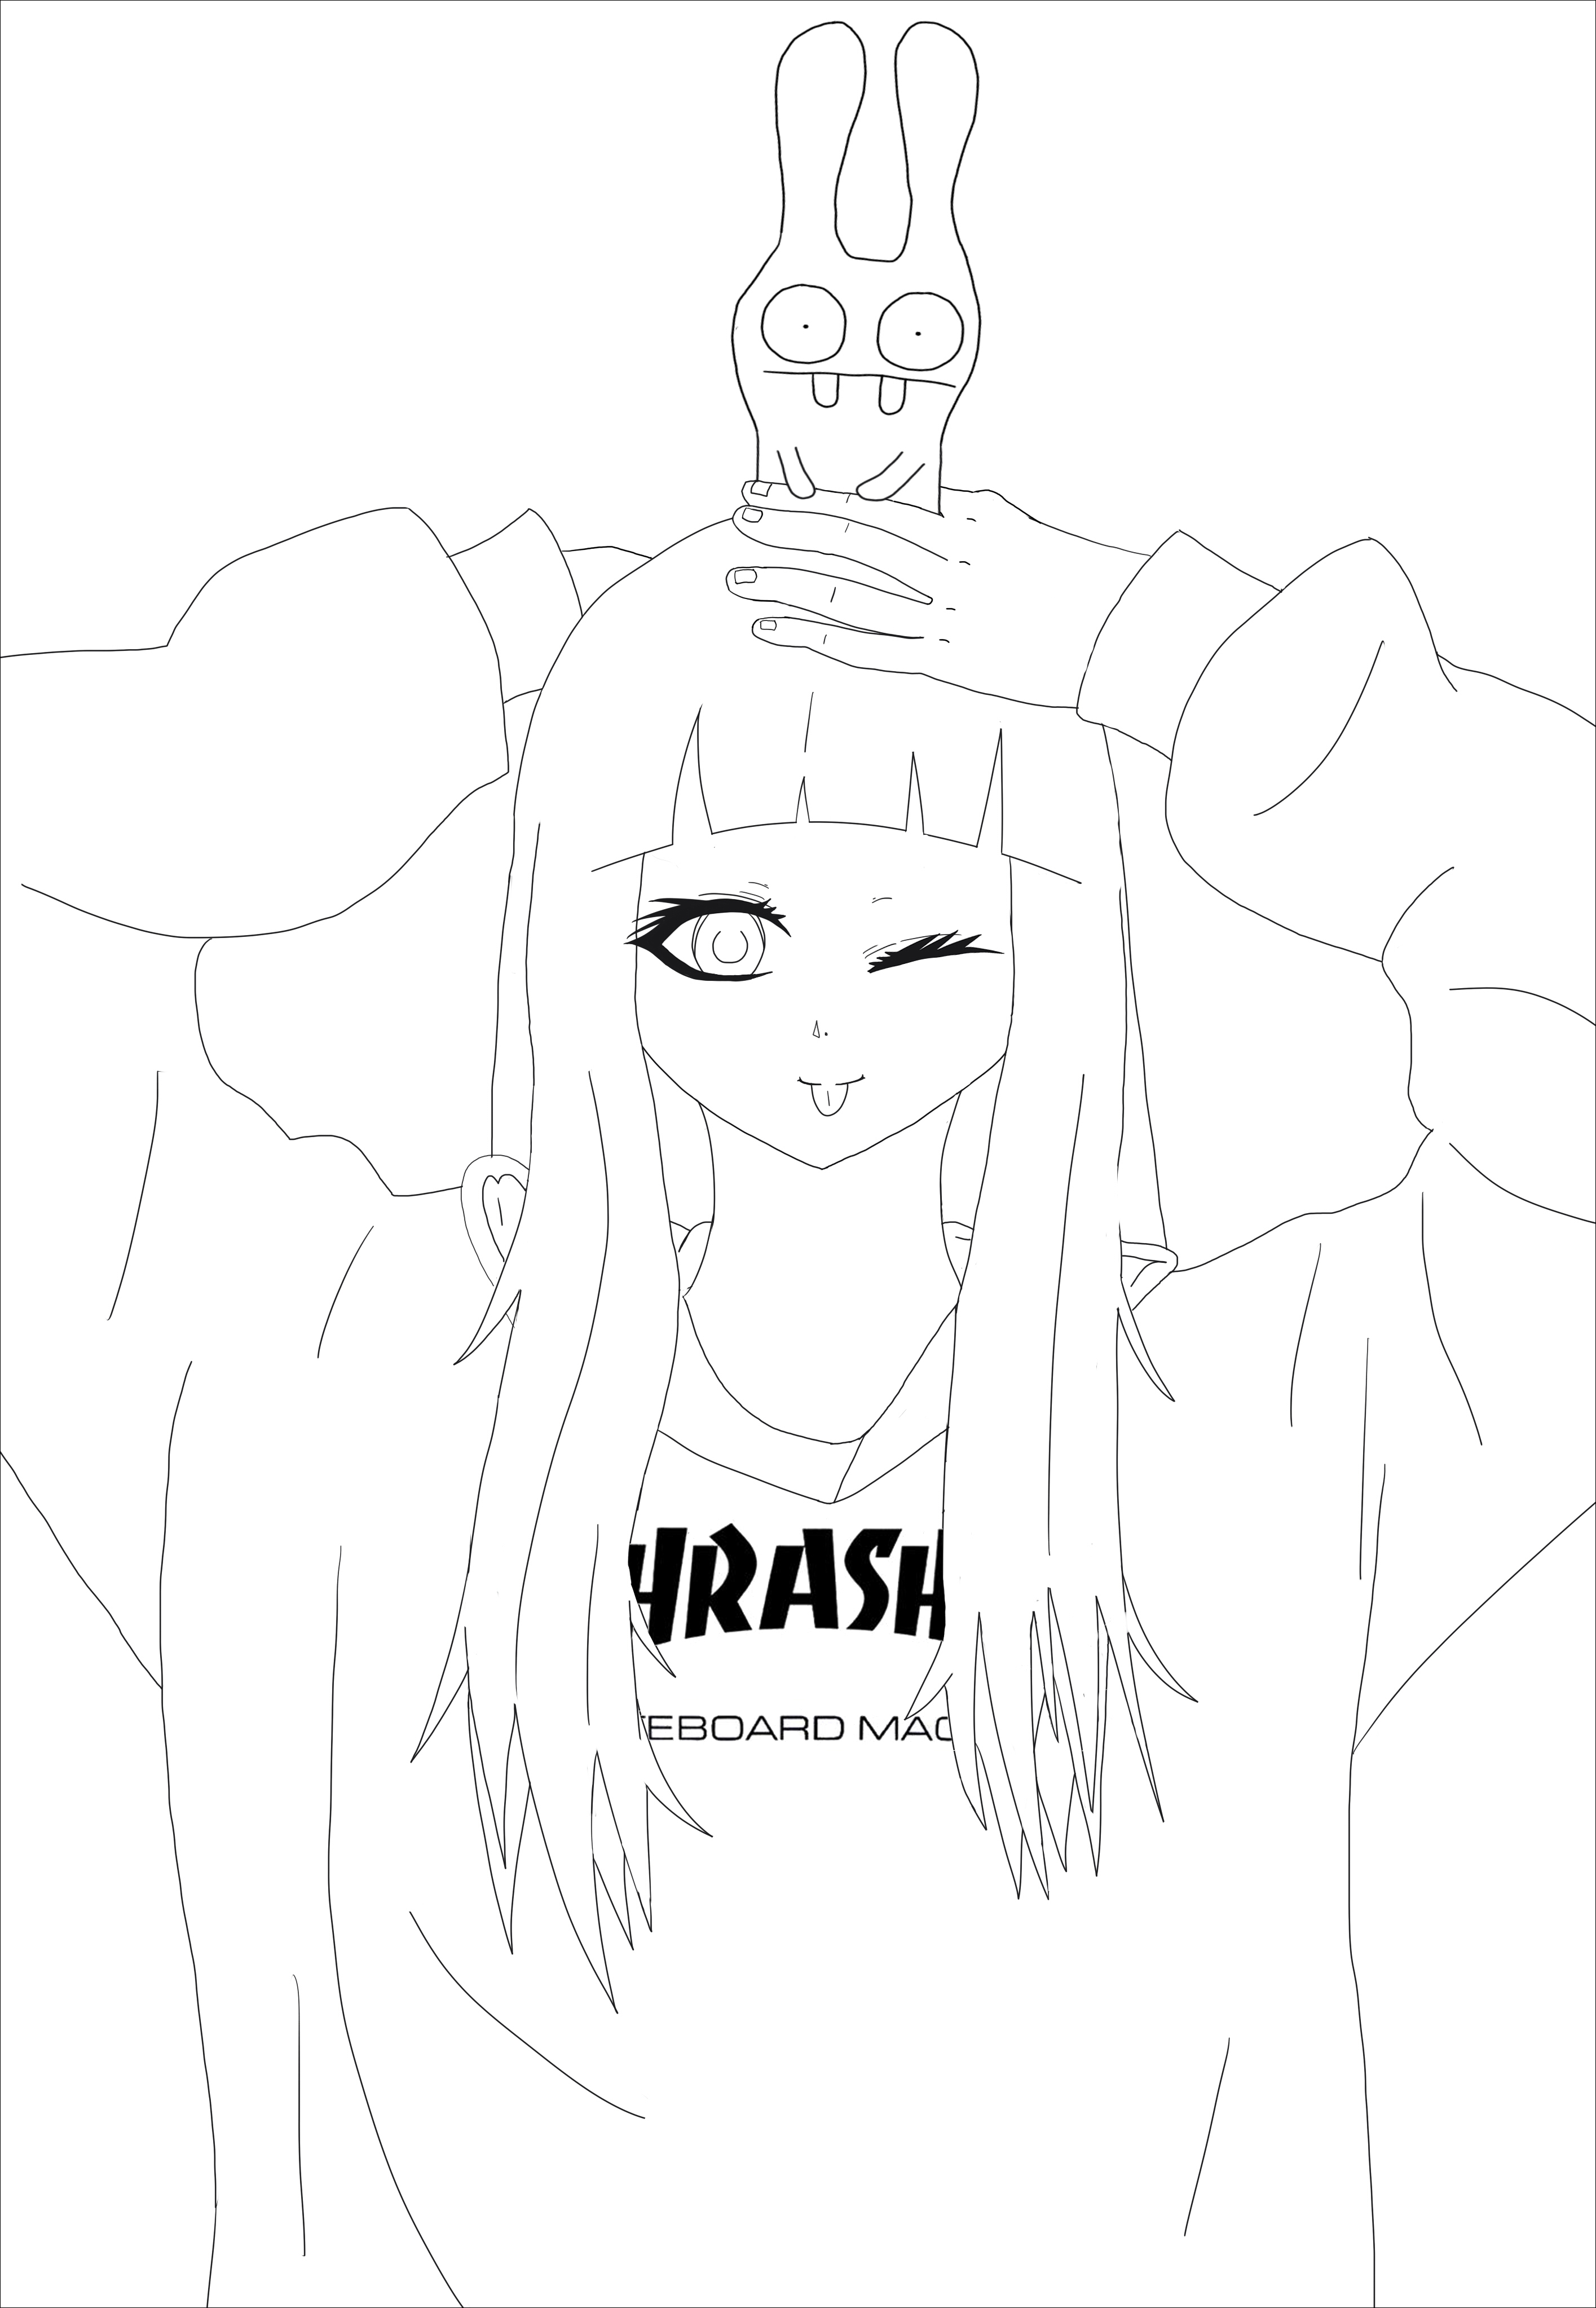 Anime Thrasher Girl - Mangas - Coloriages Difficiles Pour avec Coloriage Manga Kawaii